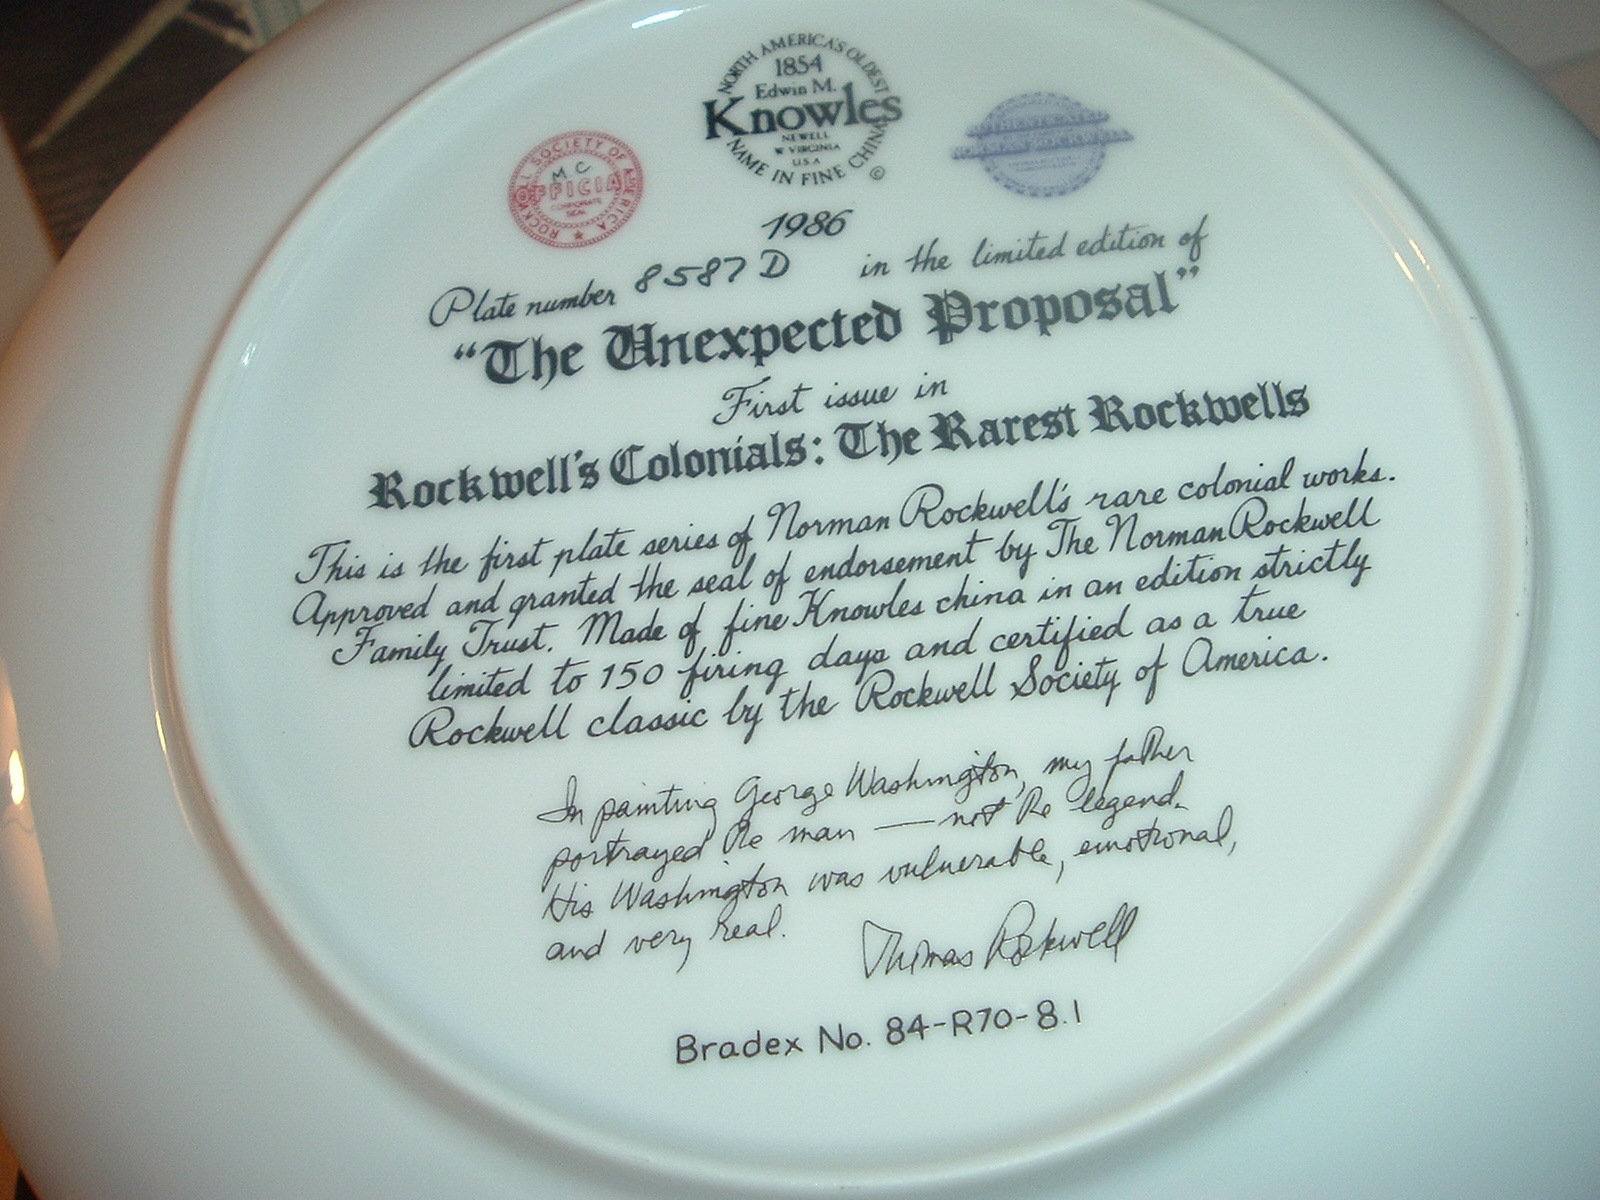 1986 Knowles Norman Rockwell The Unexpected Proposal Plate w/ COA and Box